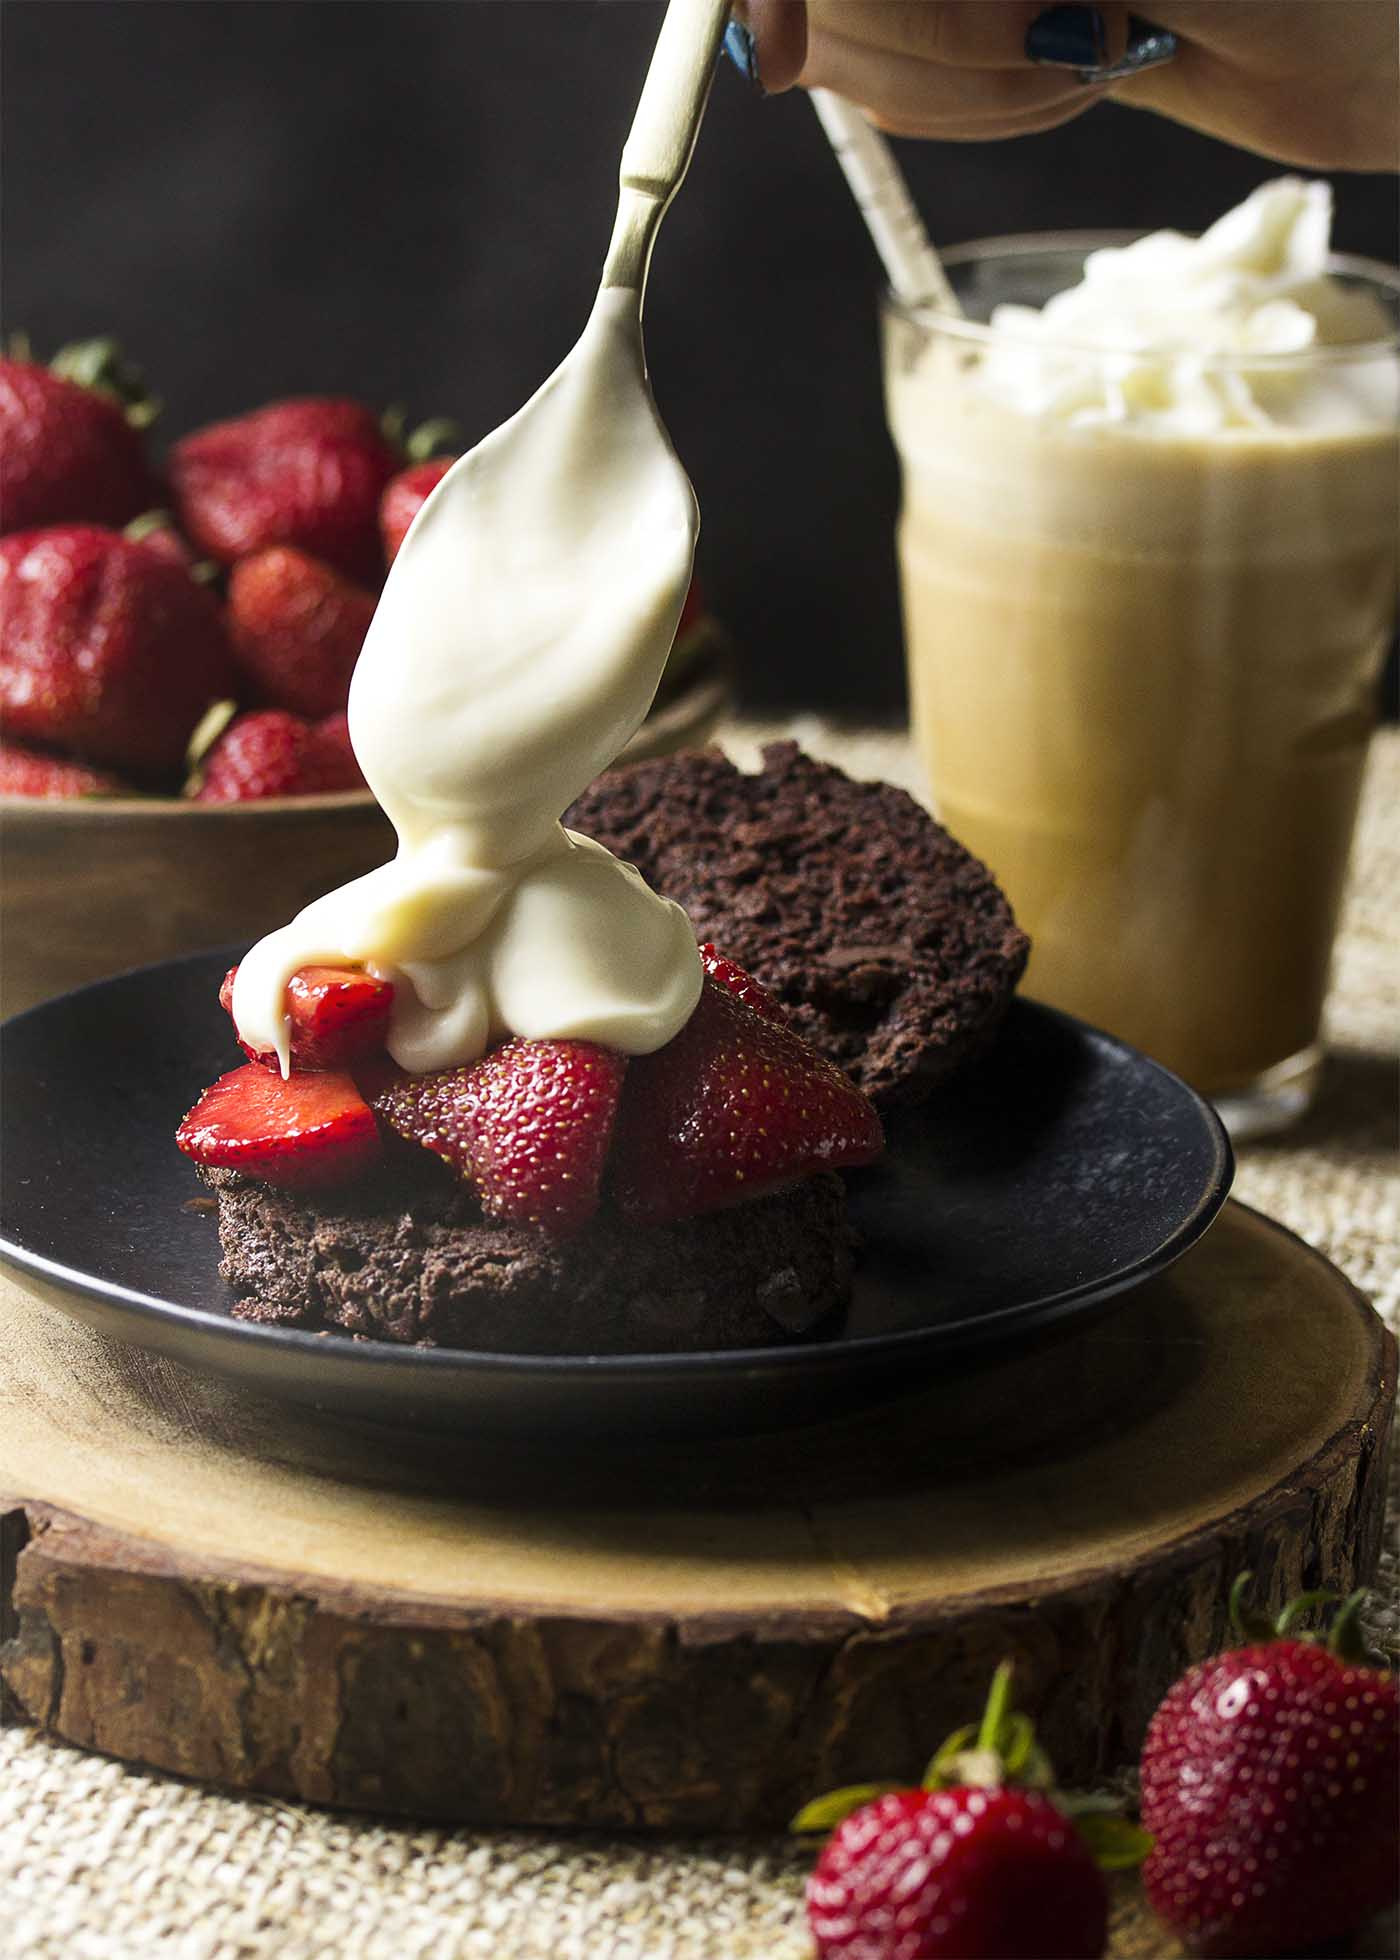 Chocolate biscuit cut open, topped by strawberries. A spoon pouring thick cream sauce over the top.